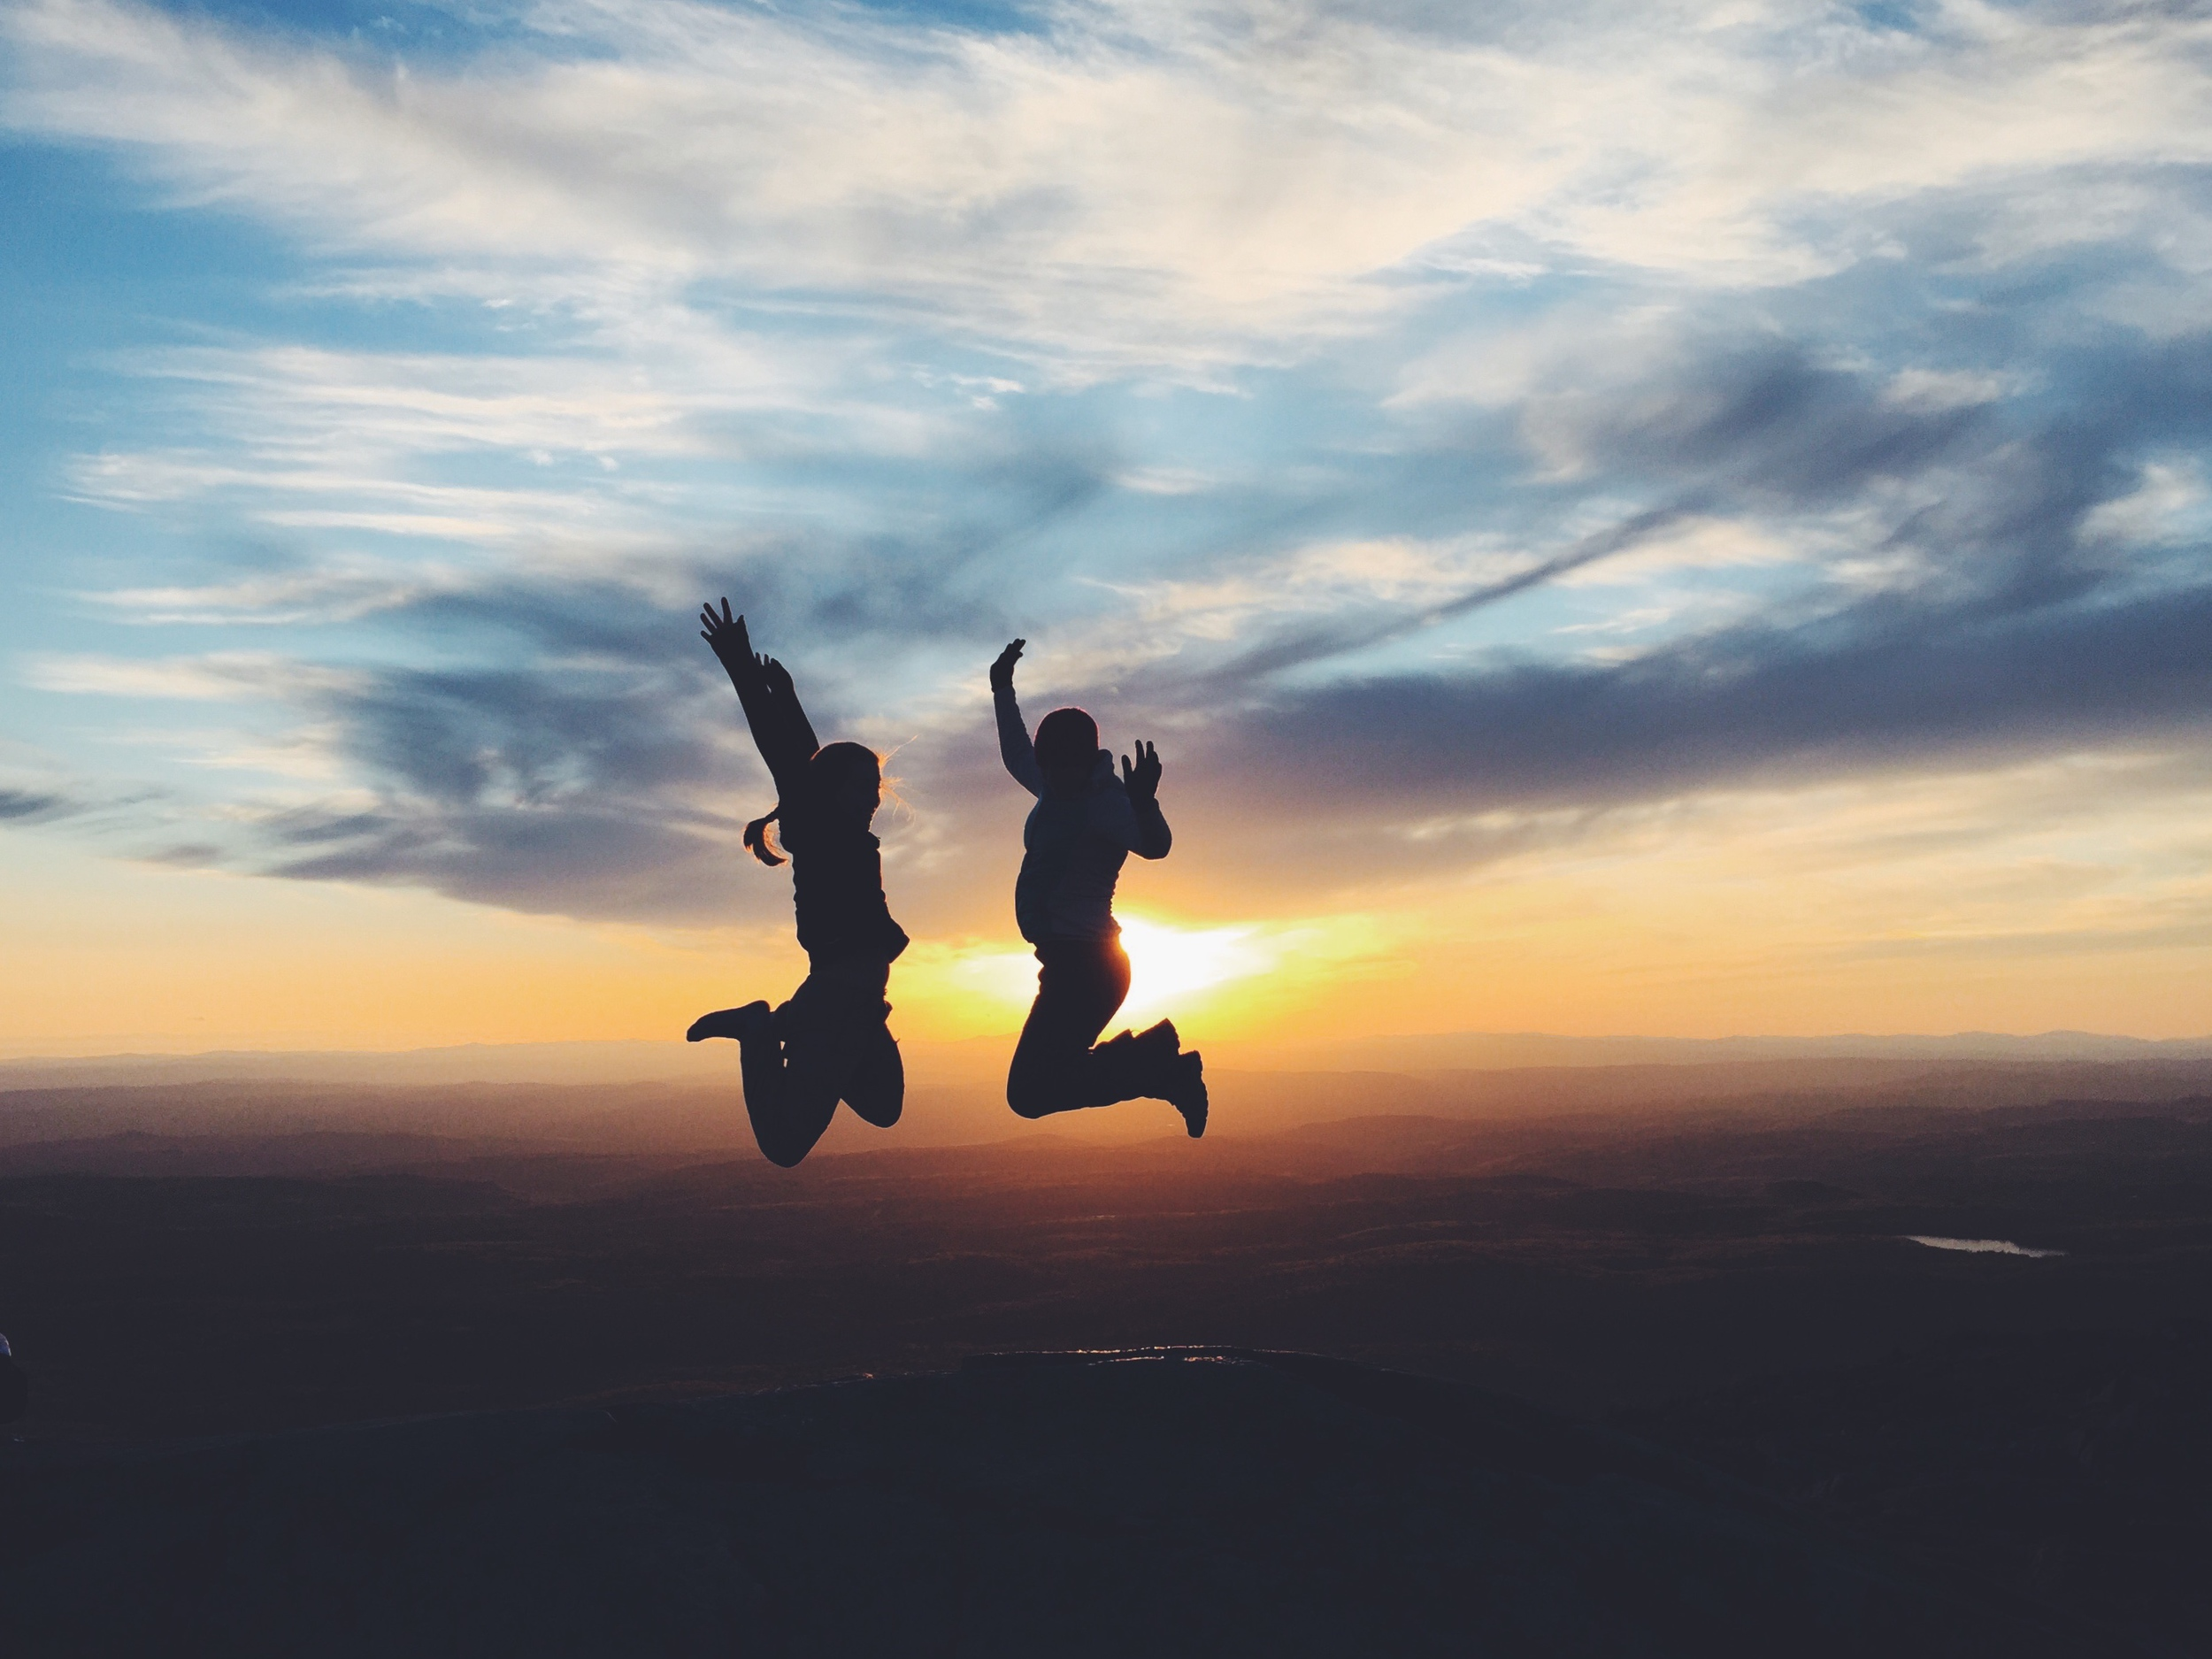 Jumping in Joy of the Sunset